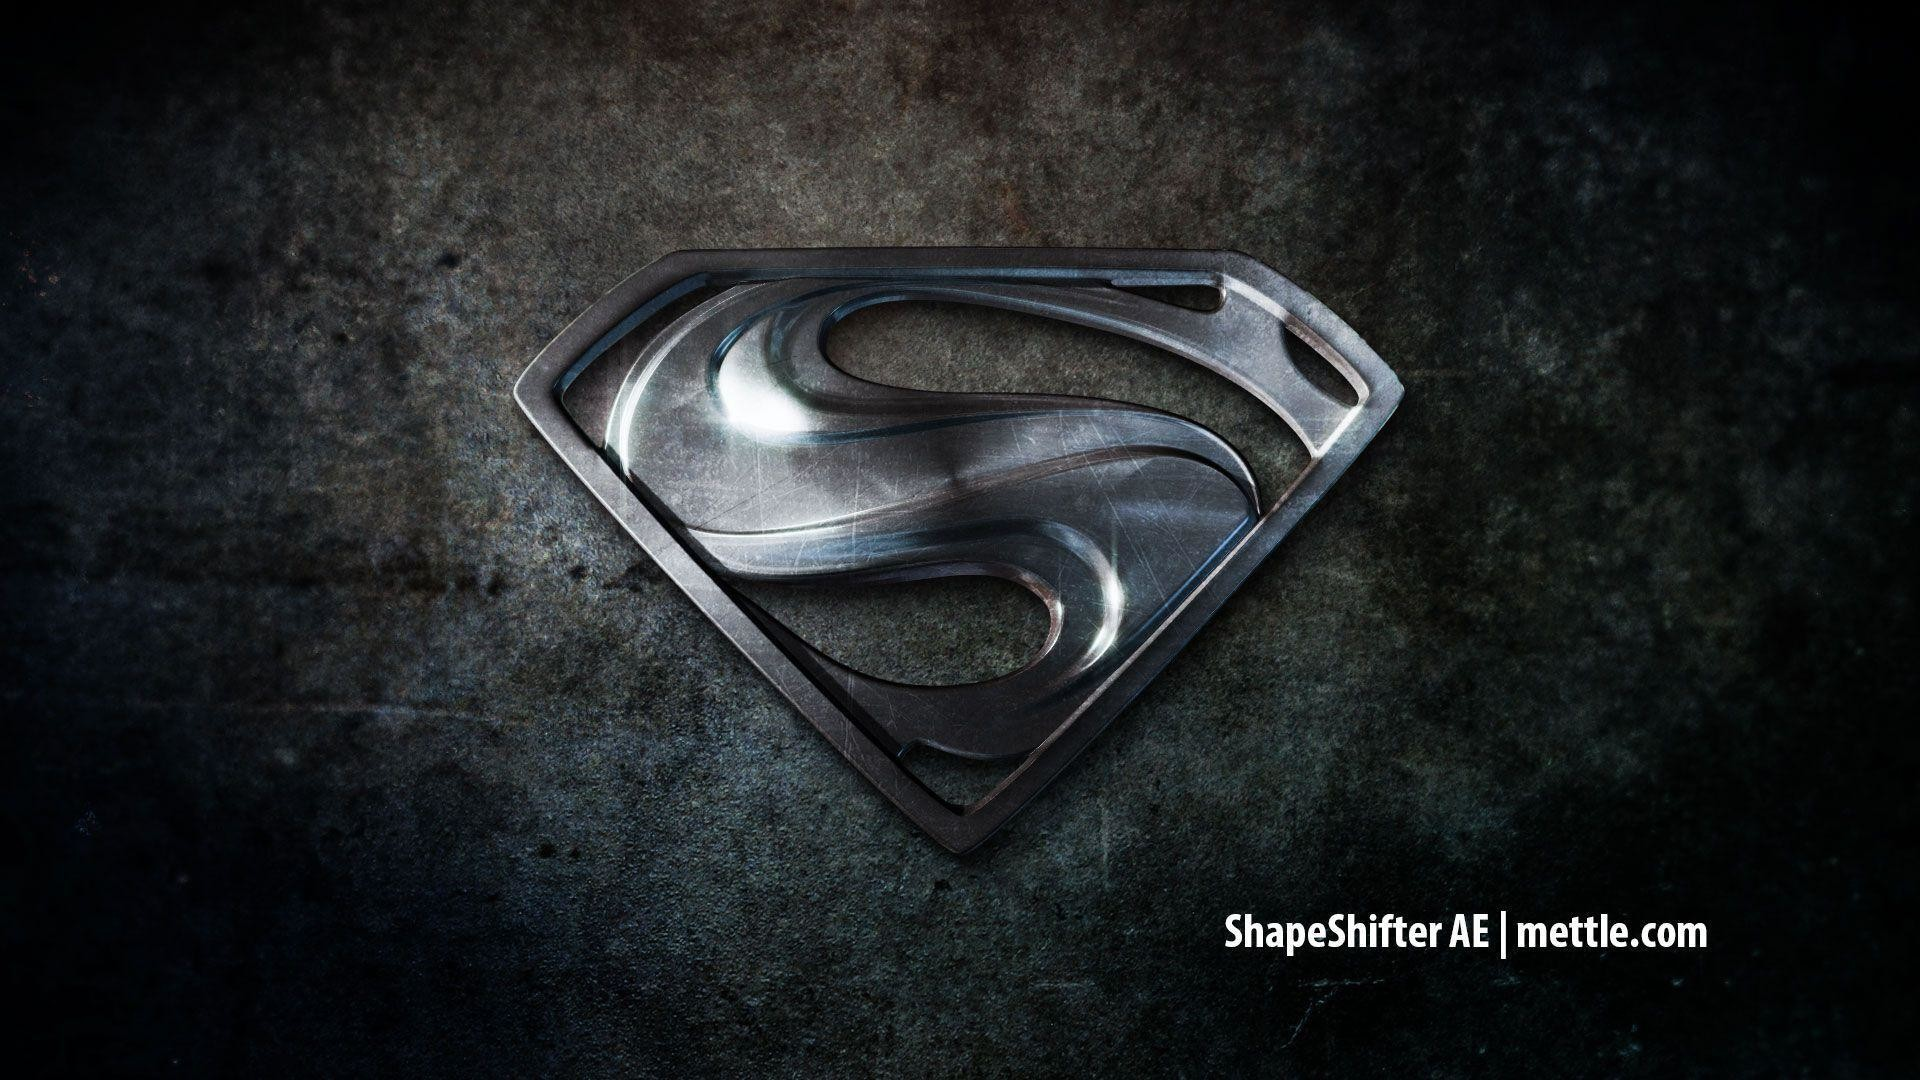 Superman logo wallpaper 63 images 2560x1600 free superman logo ipad photo hd wallpapers background photos tablet high definition best wallpaper ever free download pictures 25601600 buycottarizona Gallery